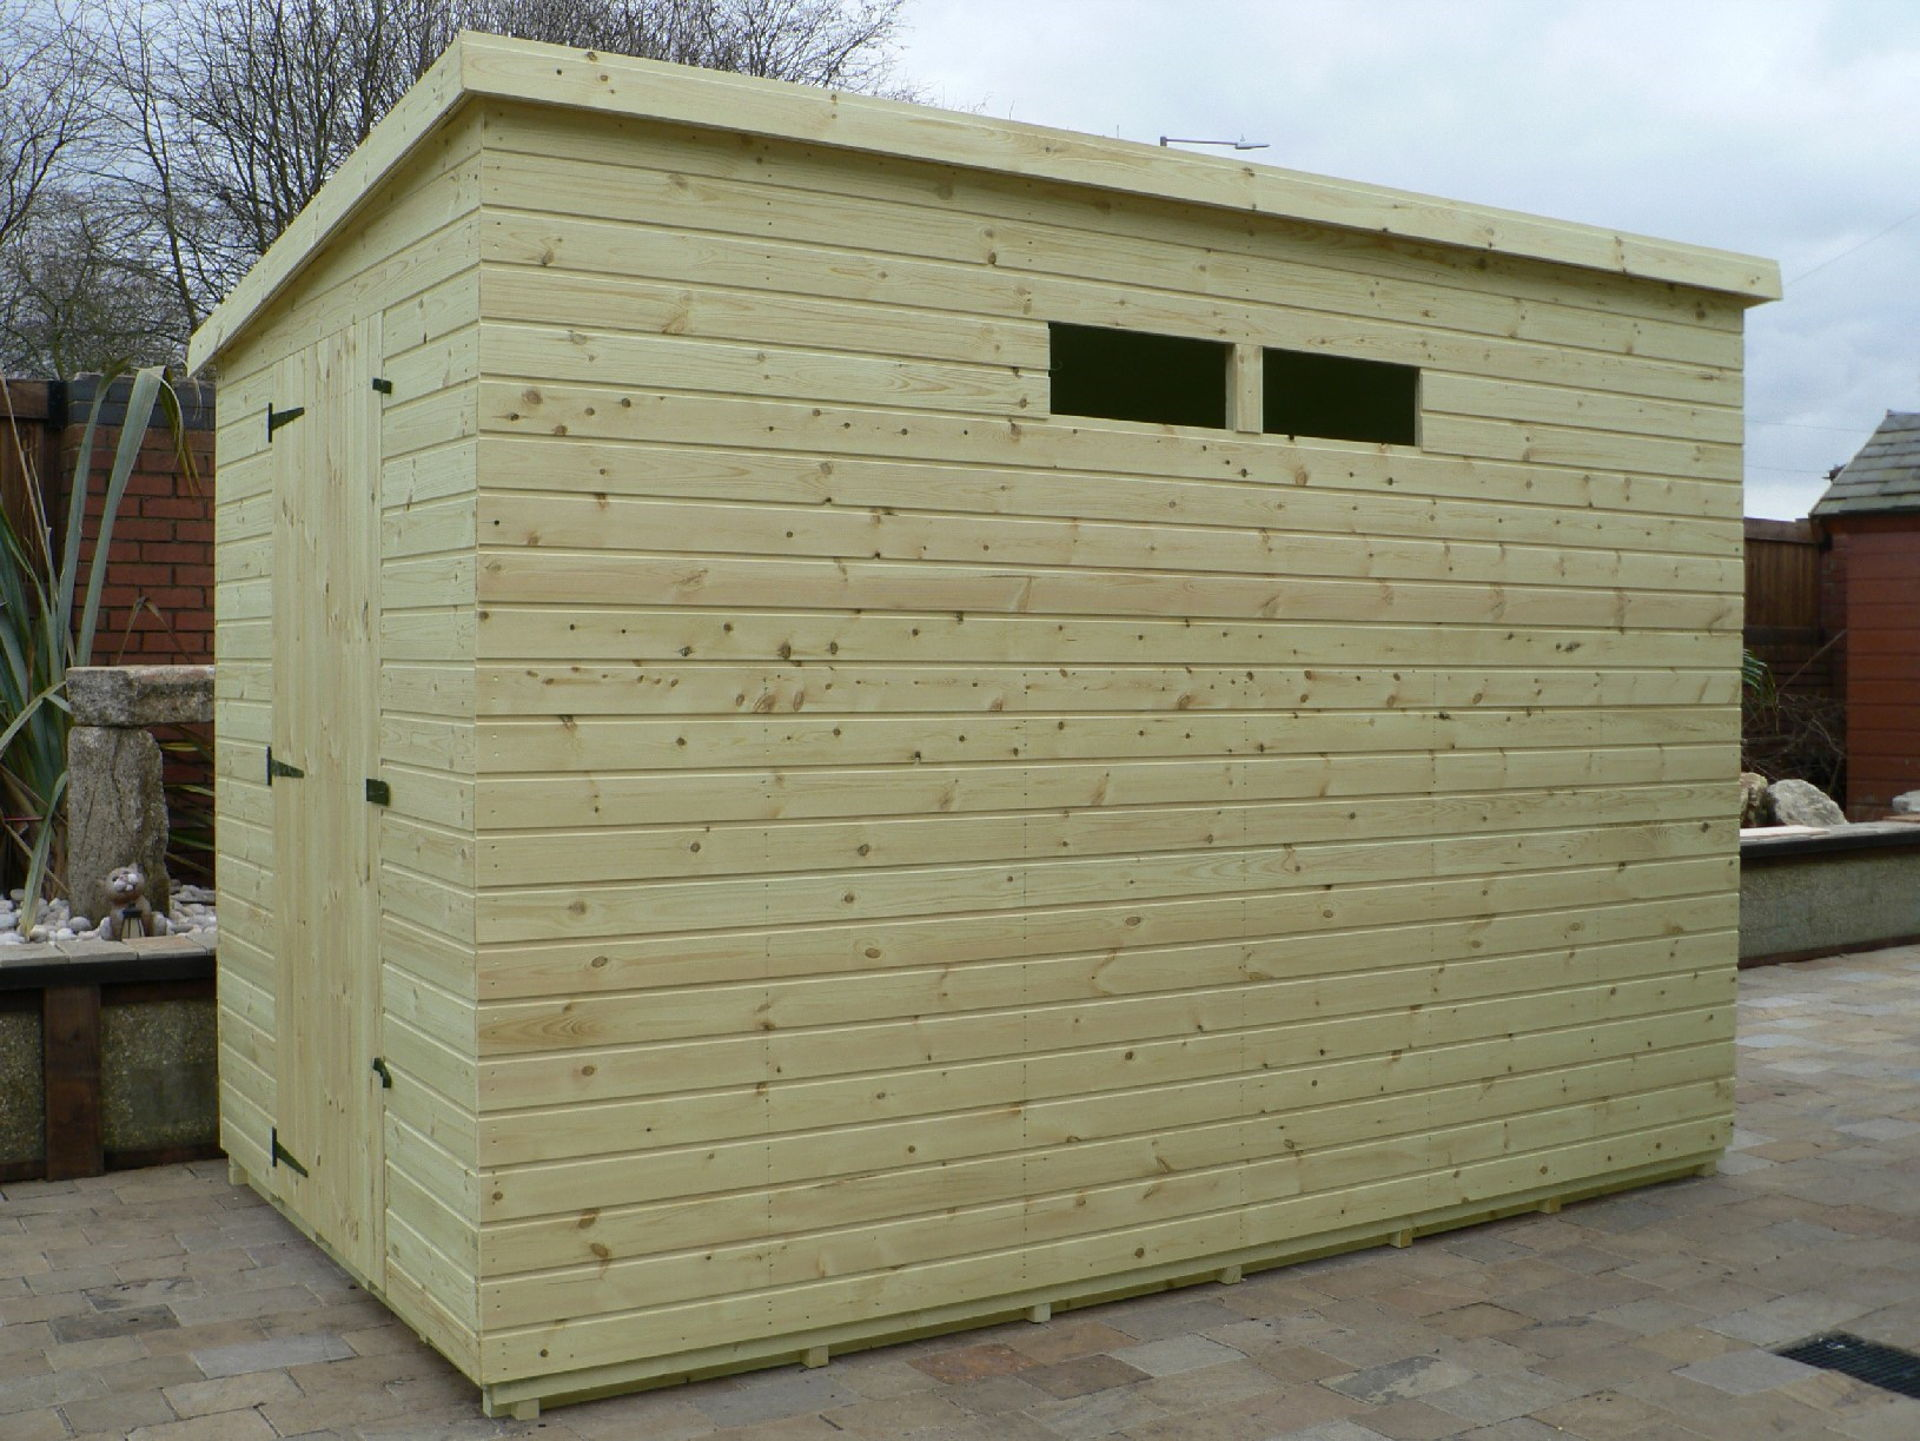 Sheds Manchester - Pressure Treated 10' x 6' Pent Shed . Door On The Left Gable End Panel. Security Windows